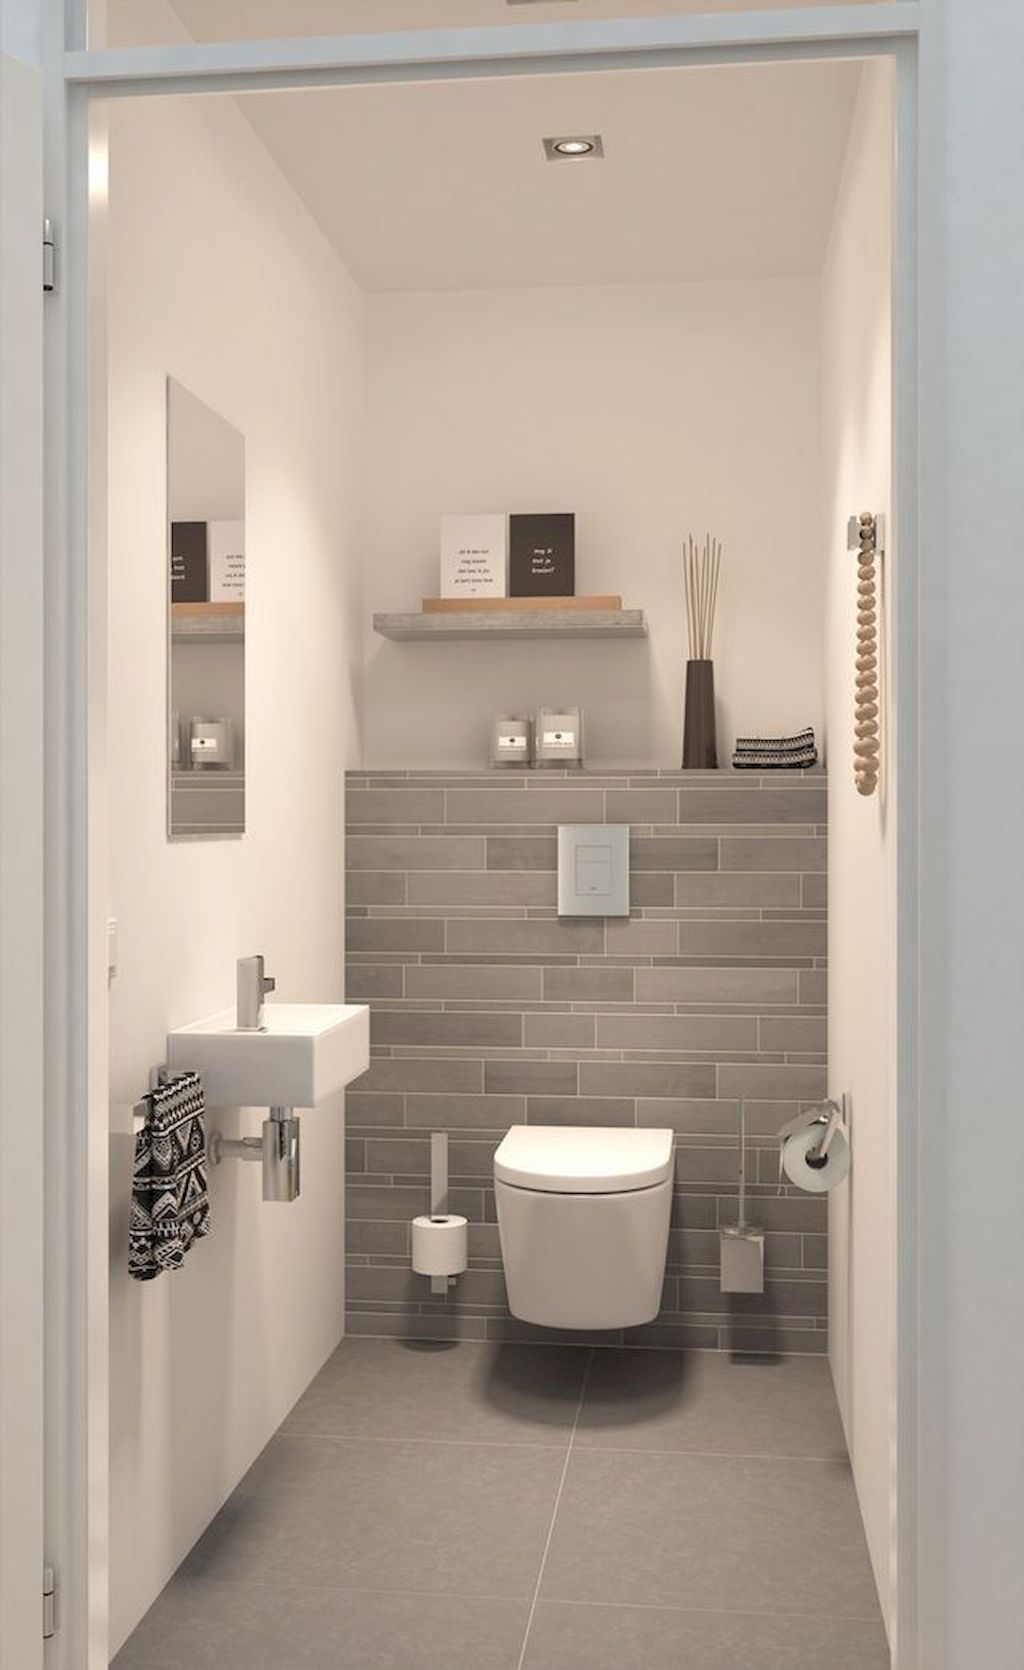 Small Bathroom Tiny Powder Room Room Dimensions 44 X 33 It Can Be Done Caroma Profile Smart 305 Toile Tiny Powder Rooms Powder Room Small Small Bathroom